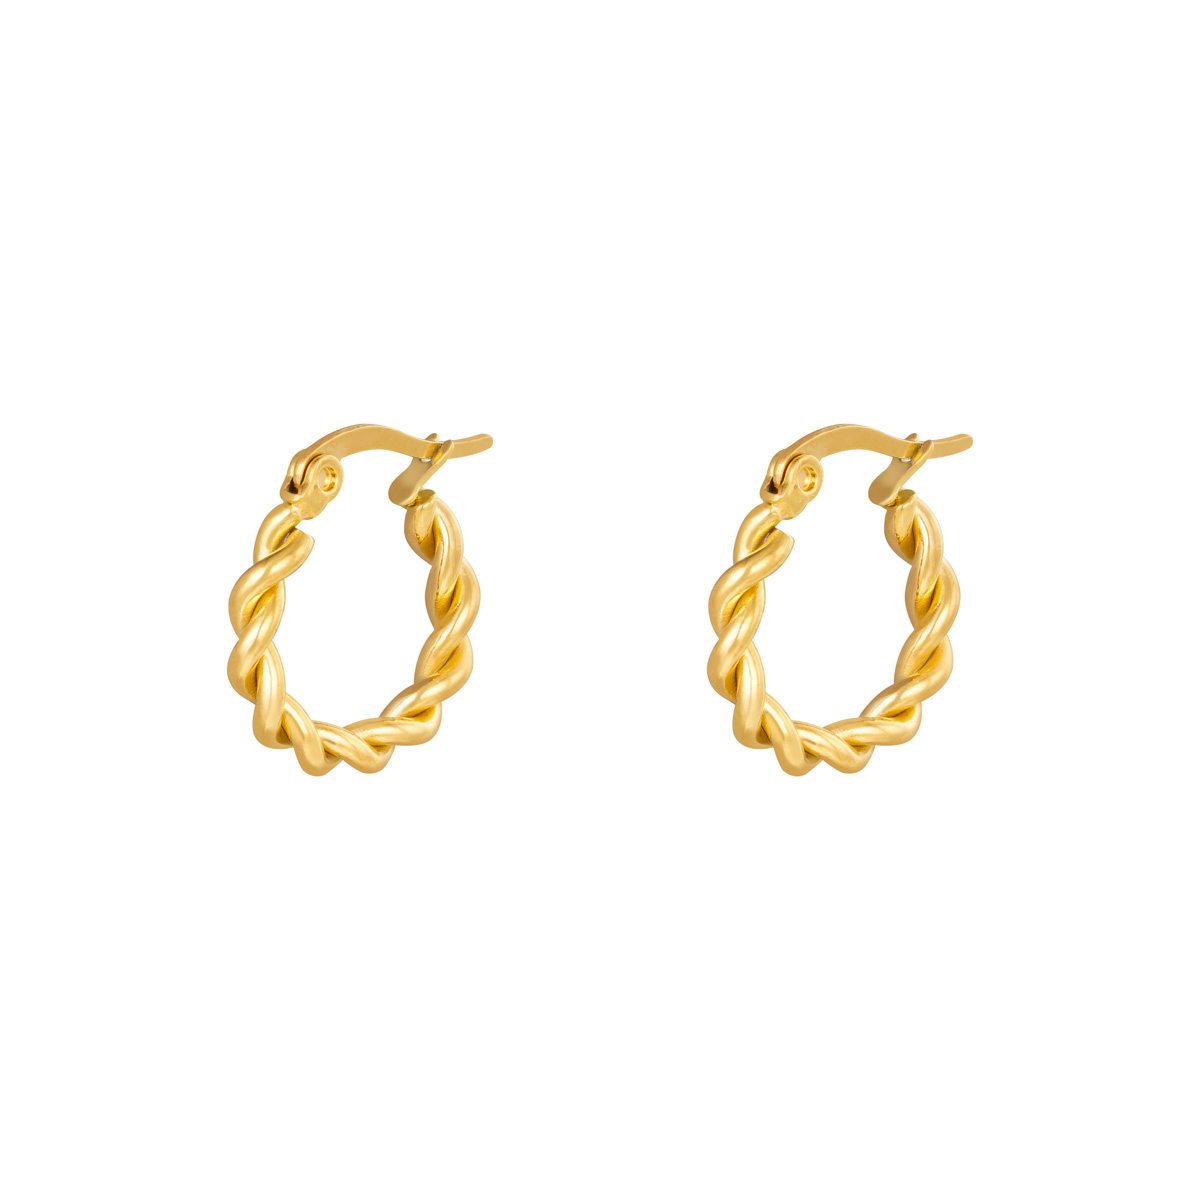 Twined Hoops - 15mm